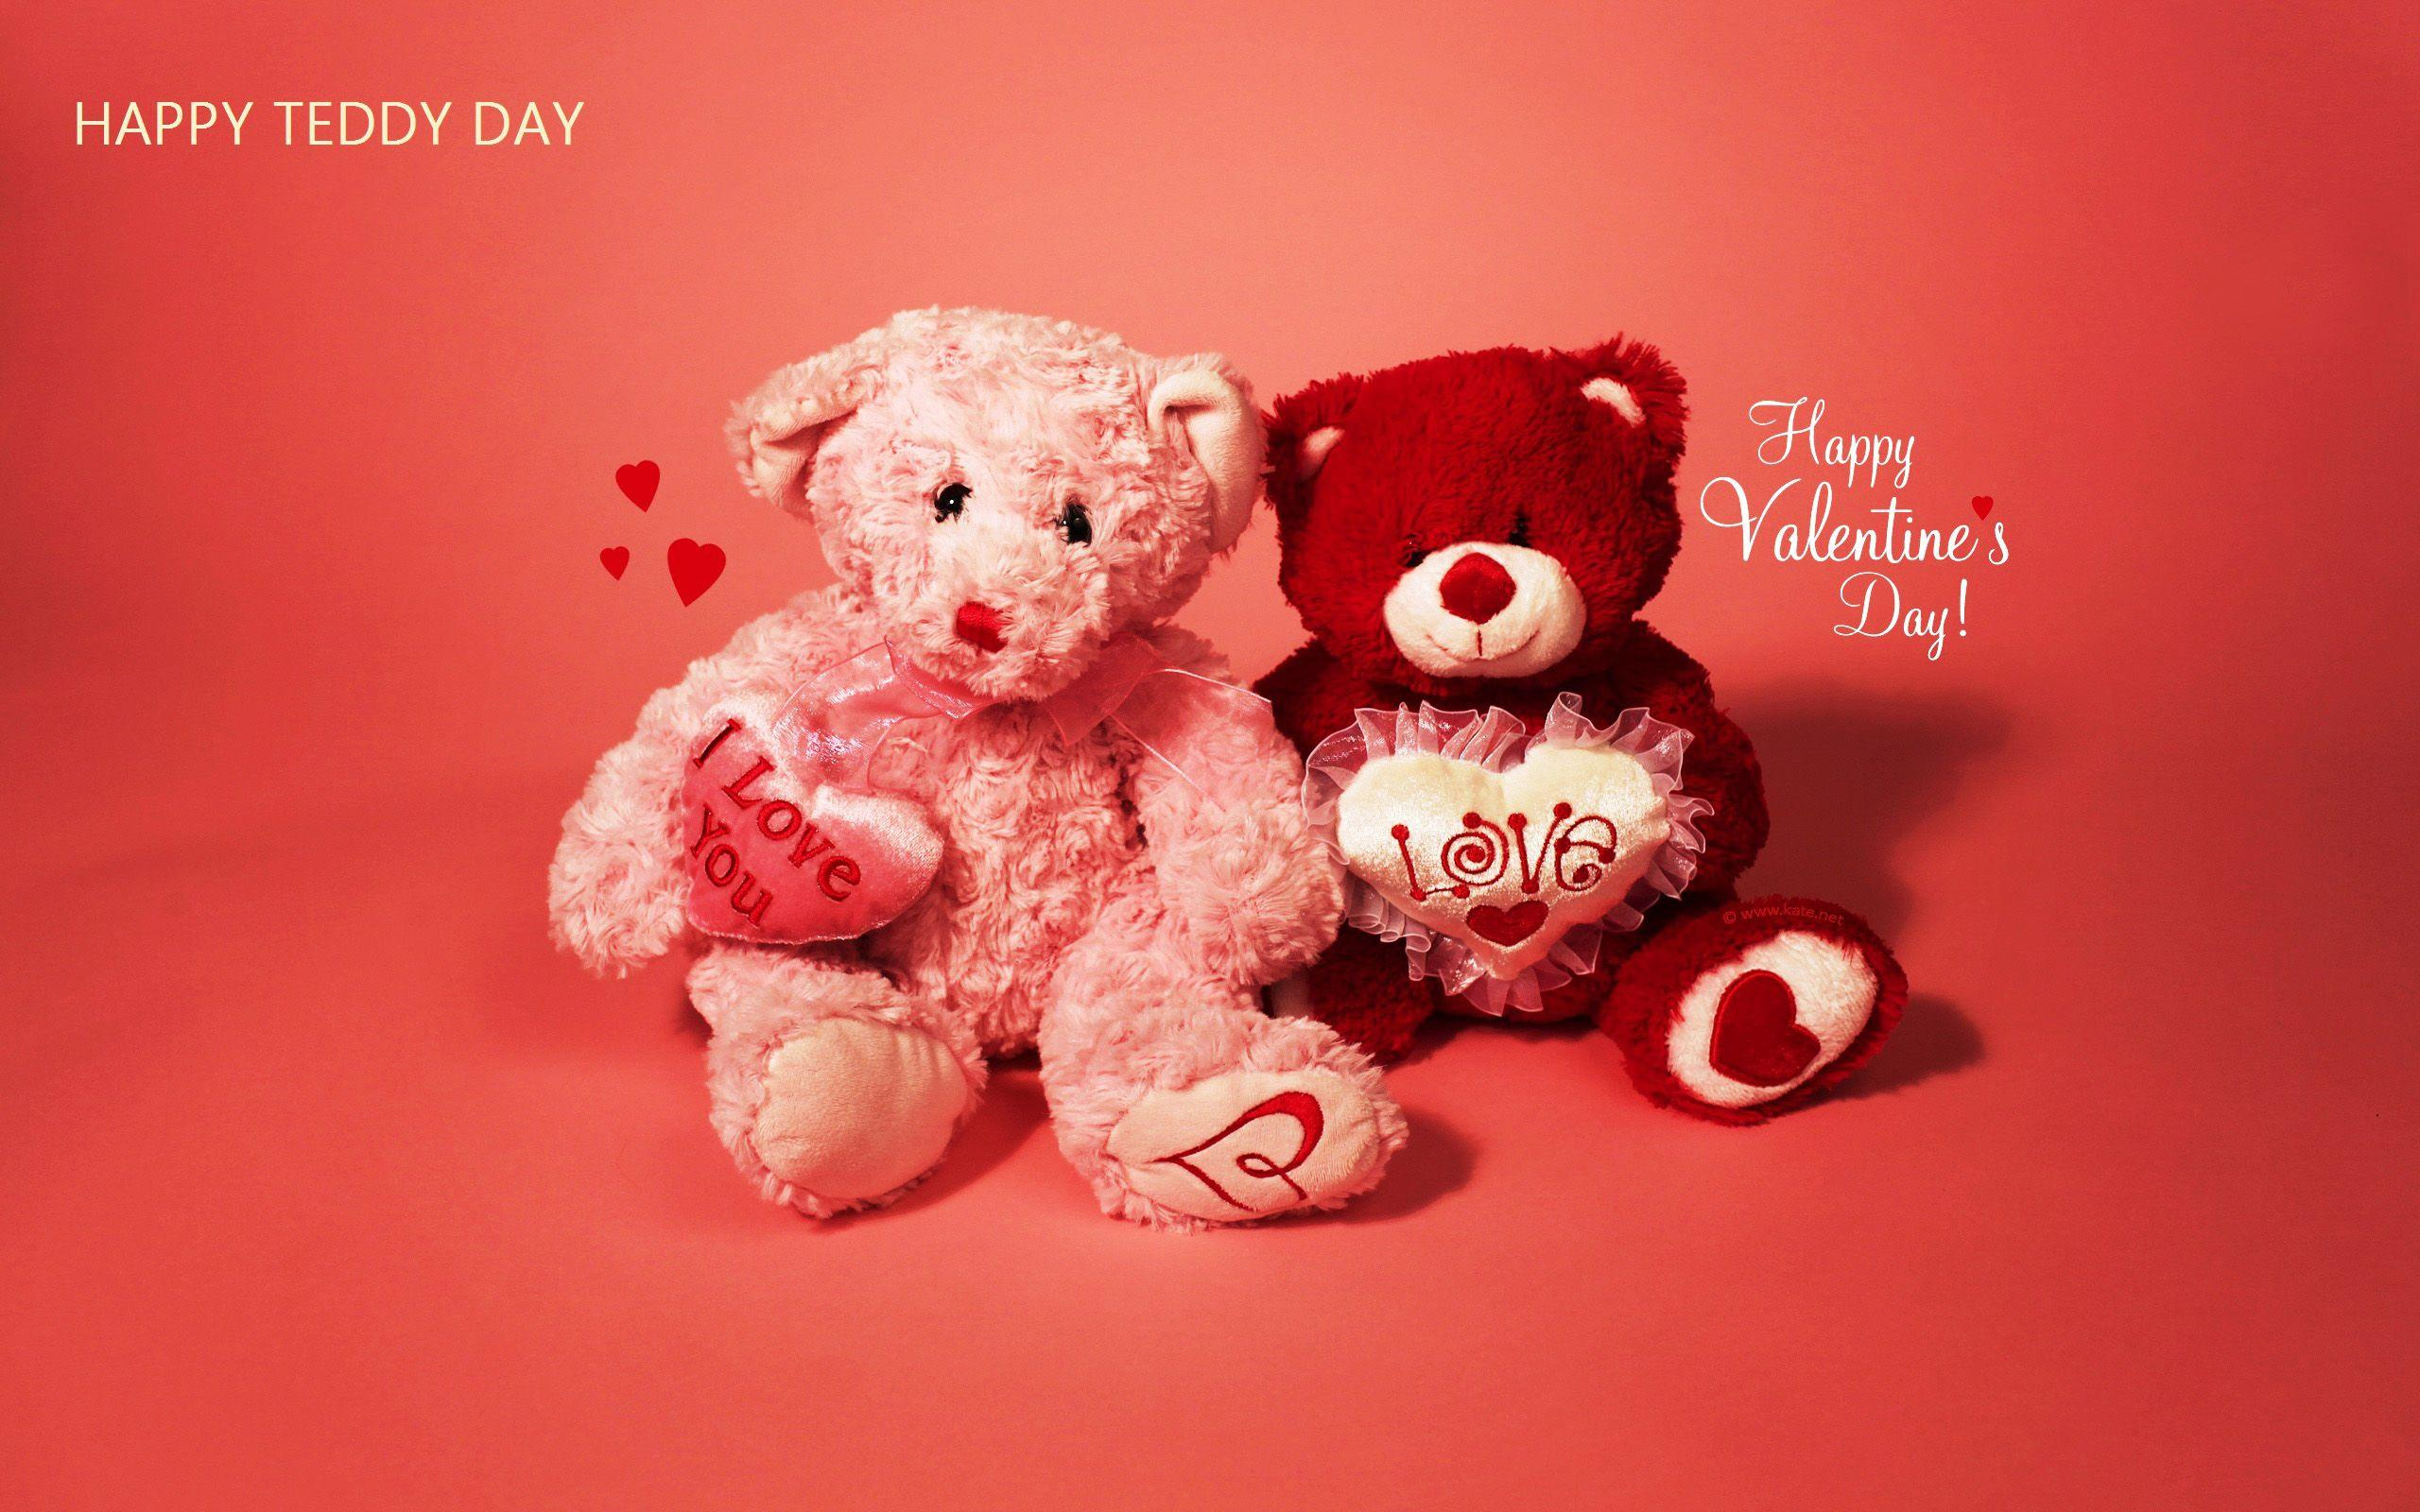 Teddy Day - Valentine Day - 10 February   INDIAN BEAUTY SAREE PHOTO GALLERY   : IMAGES, GIF, ANIMATED GIF, WALLPAPER, STICKER FOR WHATSAPP & FACEBOOK #EDUCRATSWEB